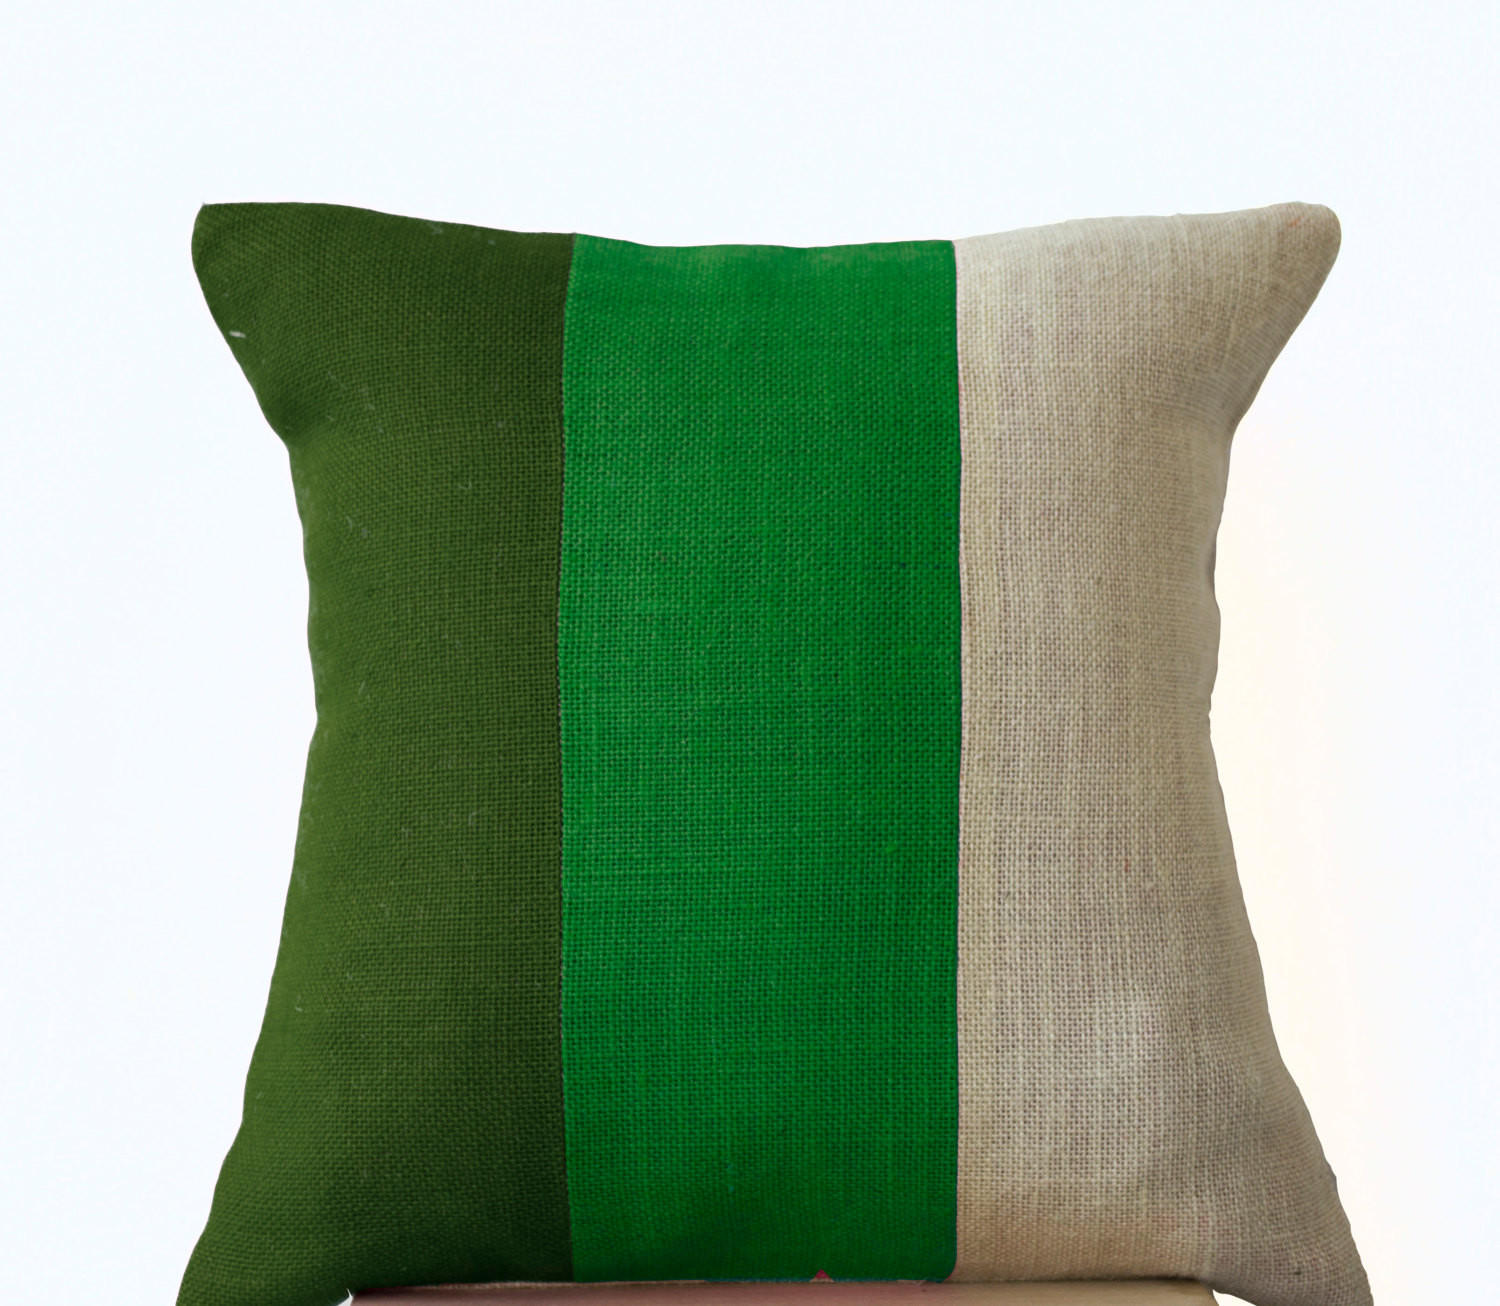 Chic Green Burlap Pillow Throw Pillows from casaamore